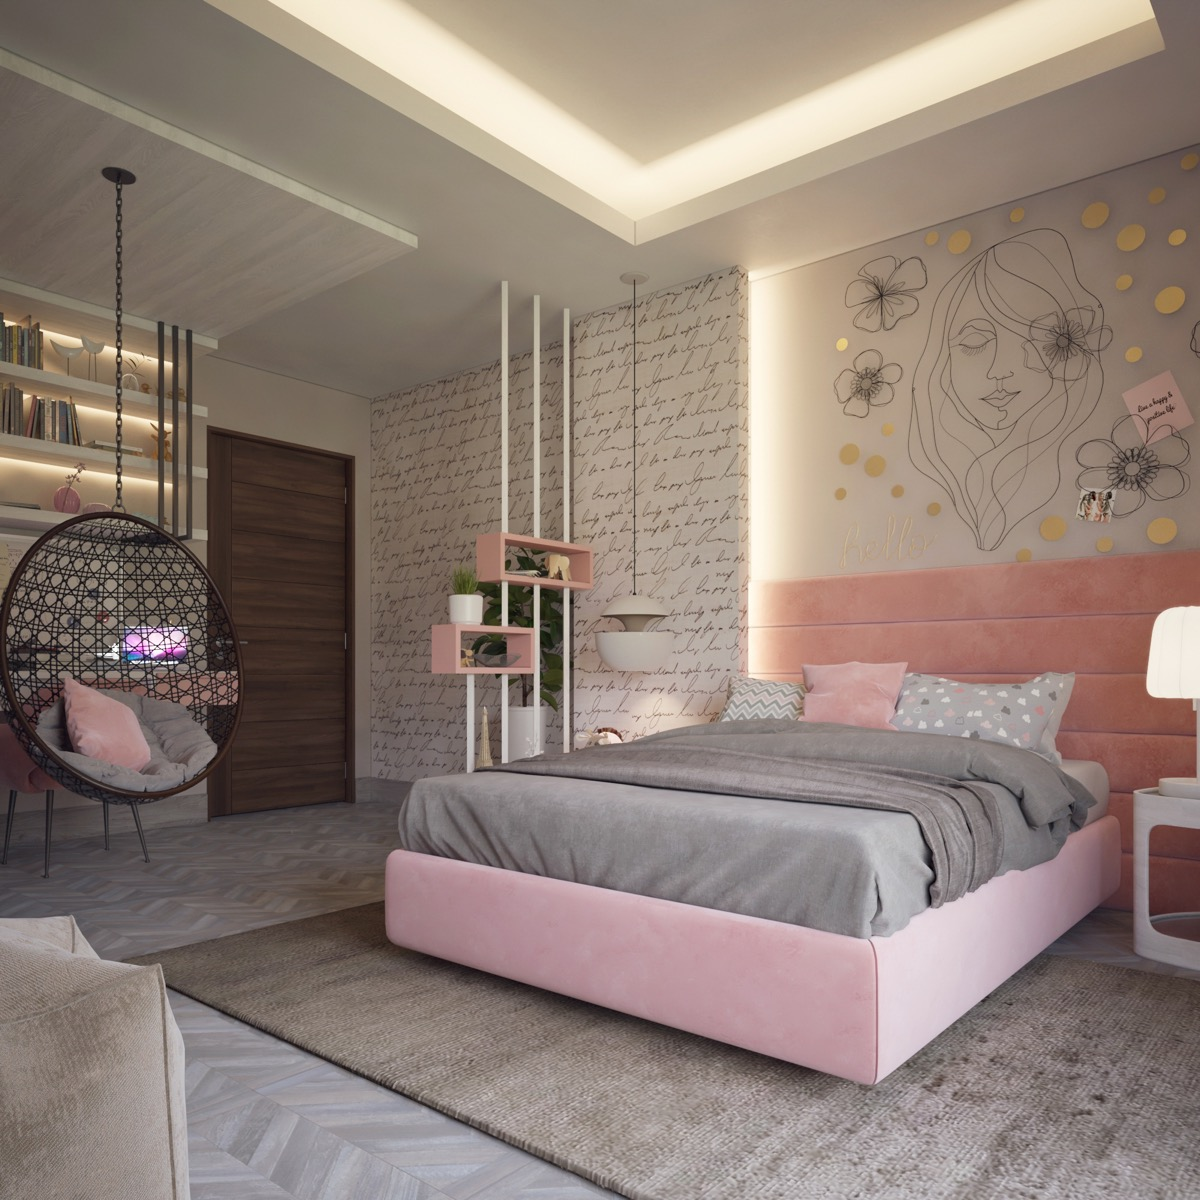 51 Cool Bedrooms With Tips To Help You Accessorize Yours on Cool Bedroom  id=34133